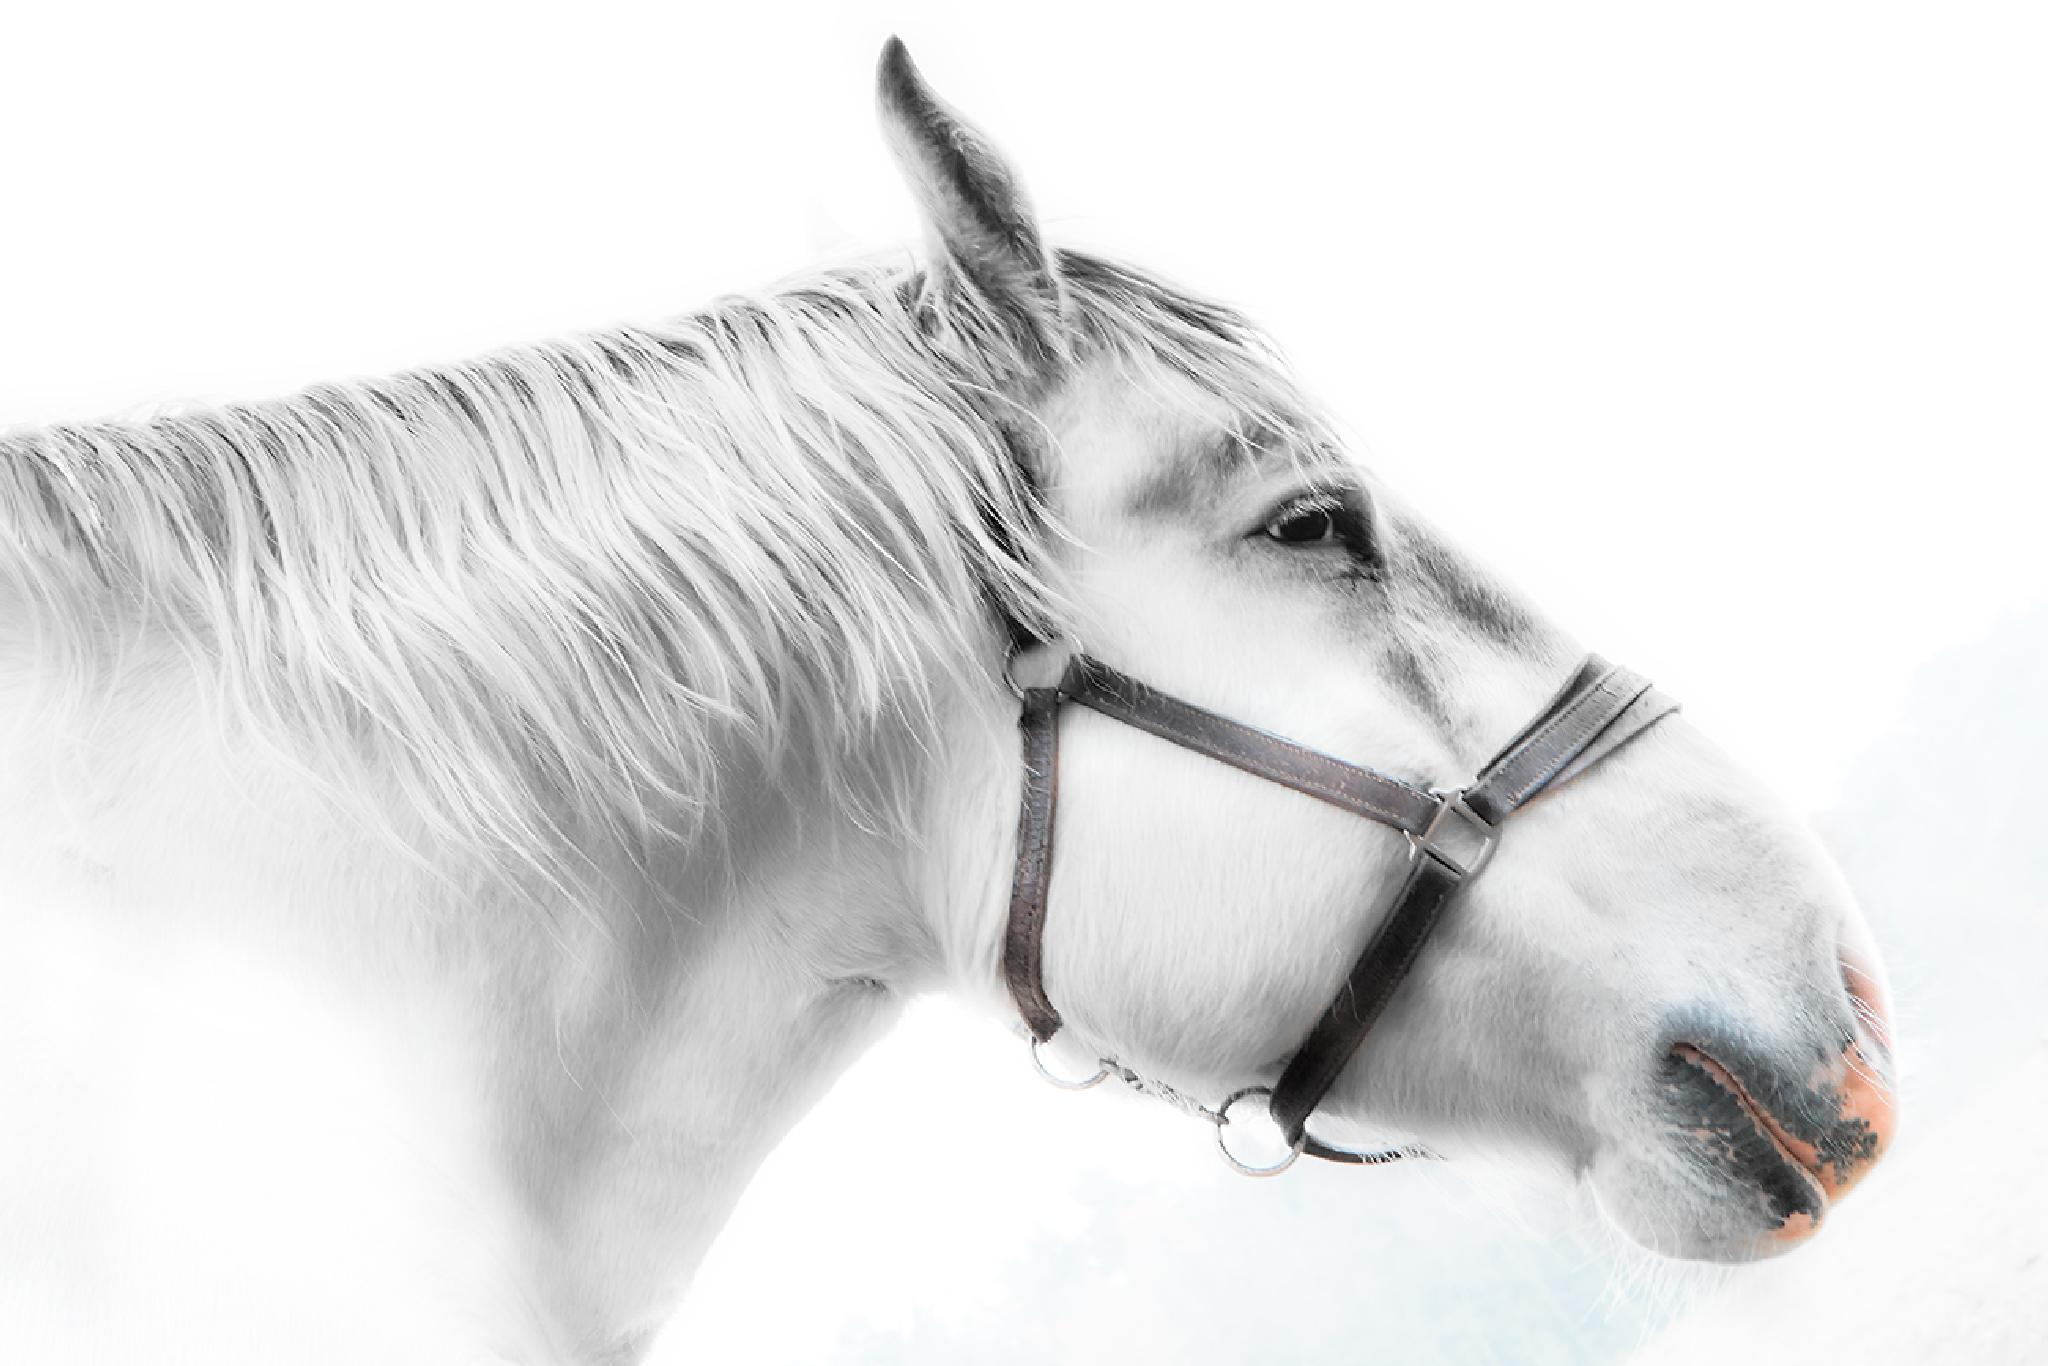 White spirit by gilclaes